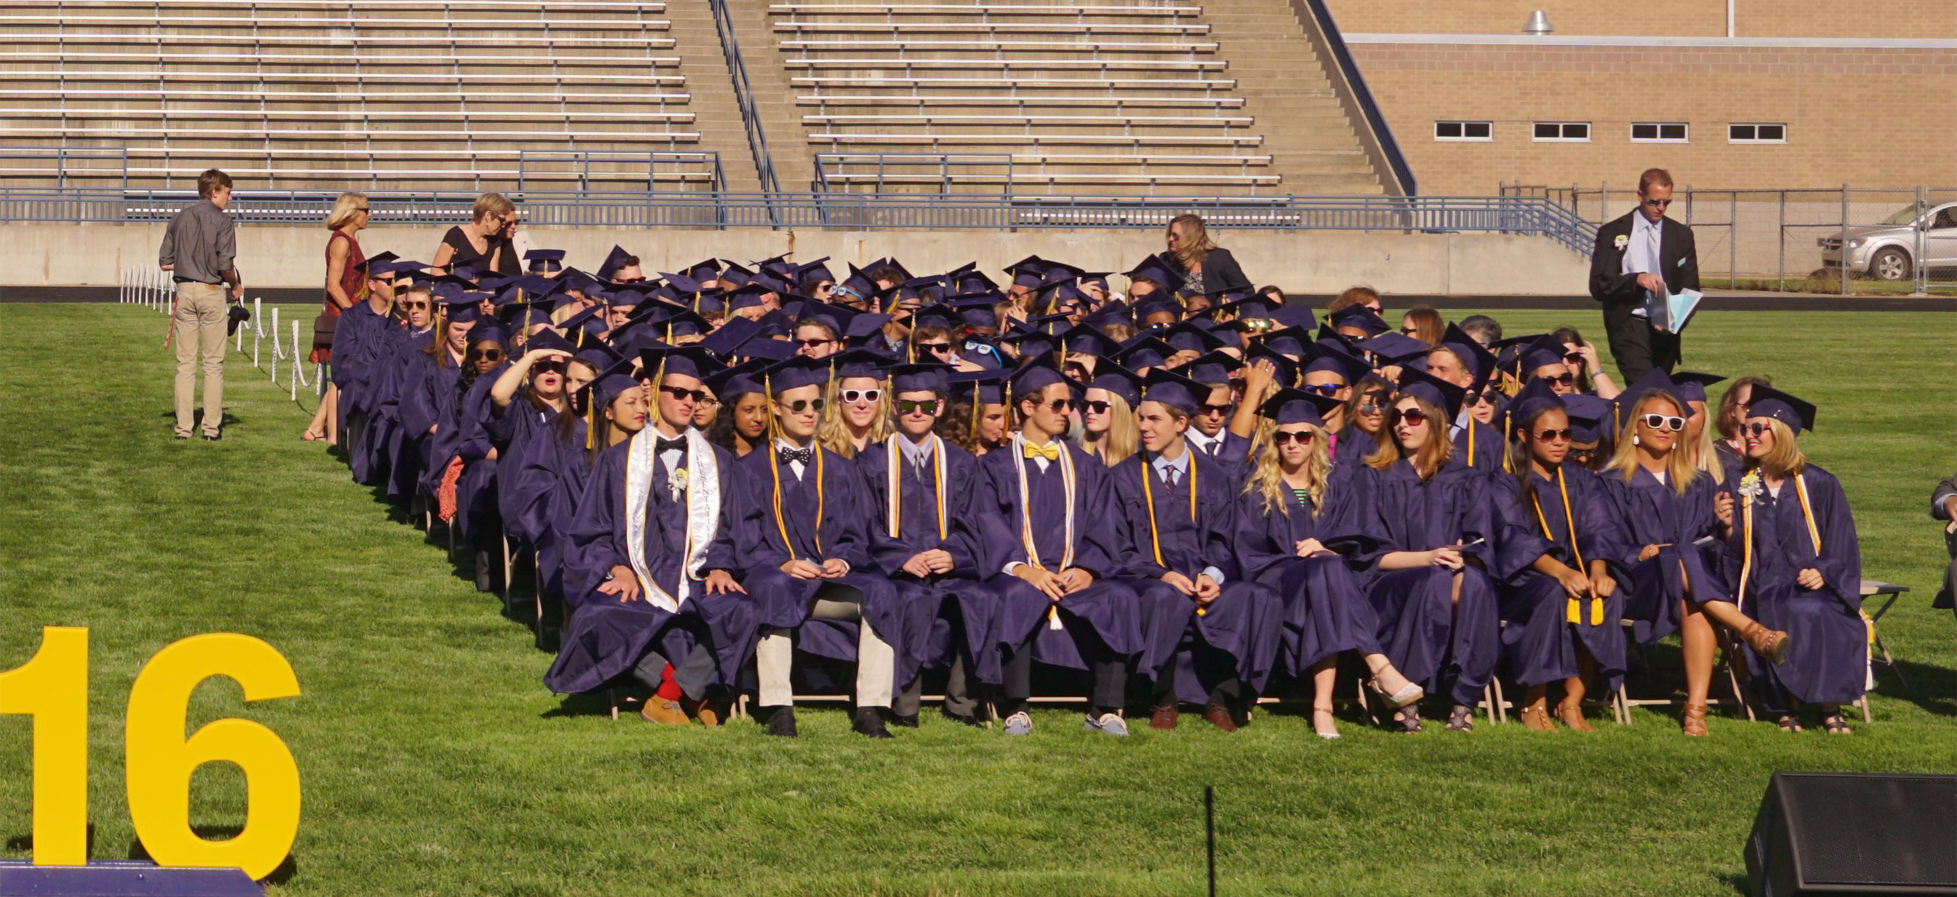 class of 2016 sitting in chairs in stadium with cap and gowns